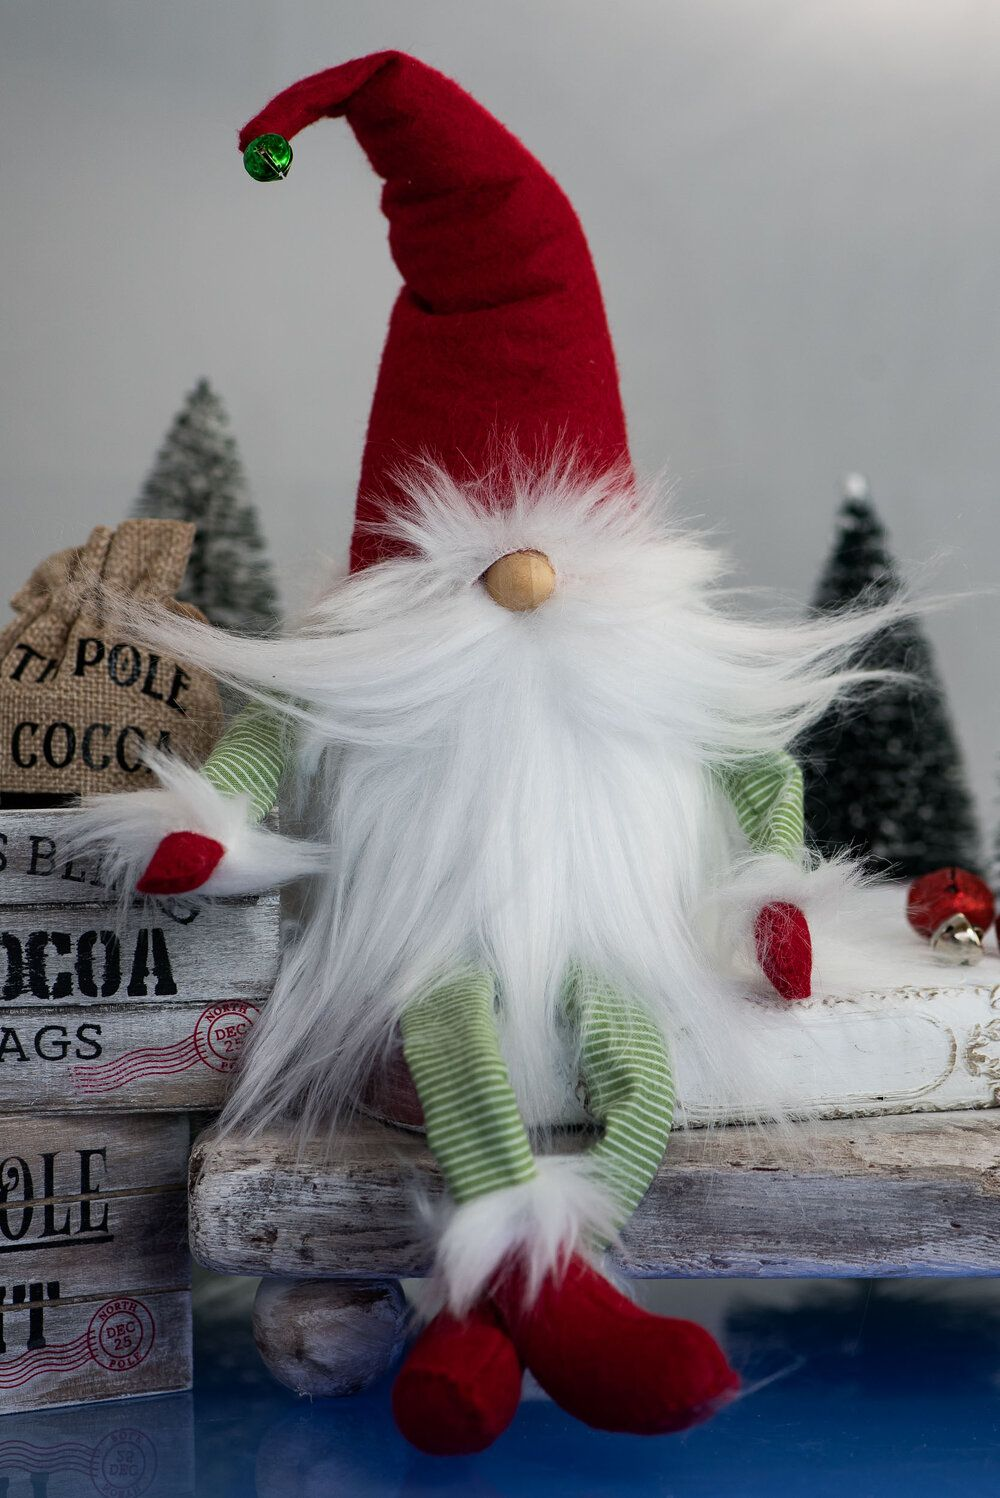 Gallery Of Gnomes Christmas Crafts For Gifts Gnomes Crafts Crafts